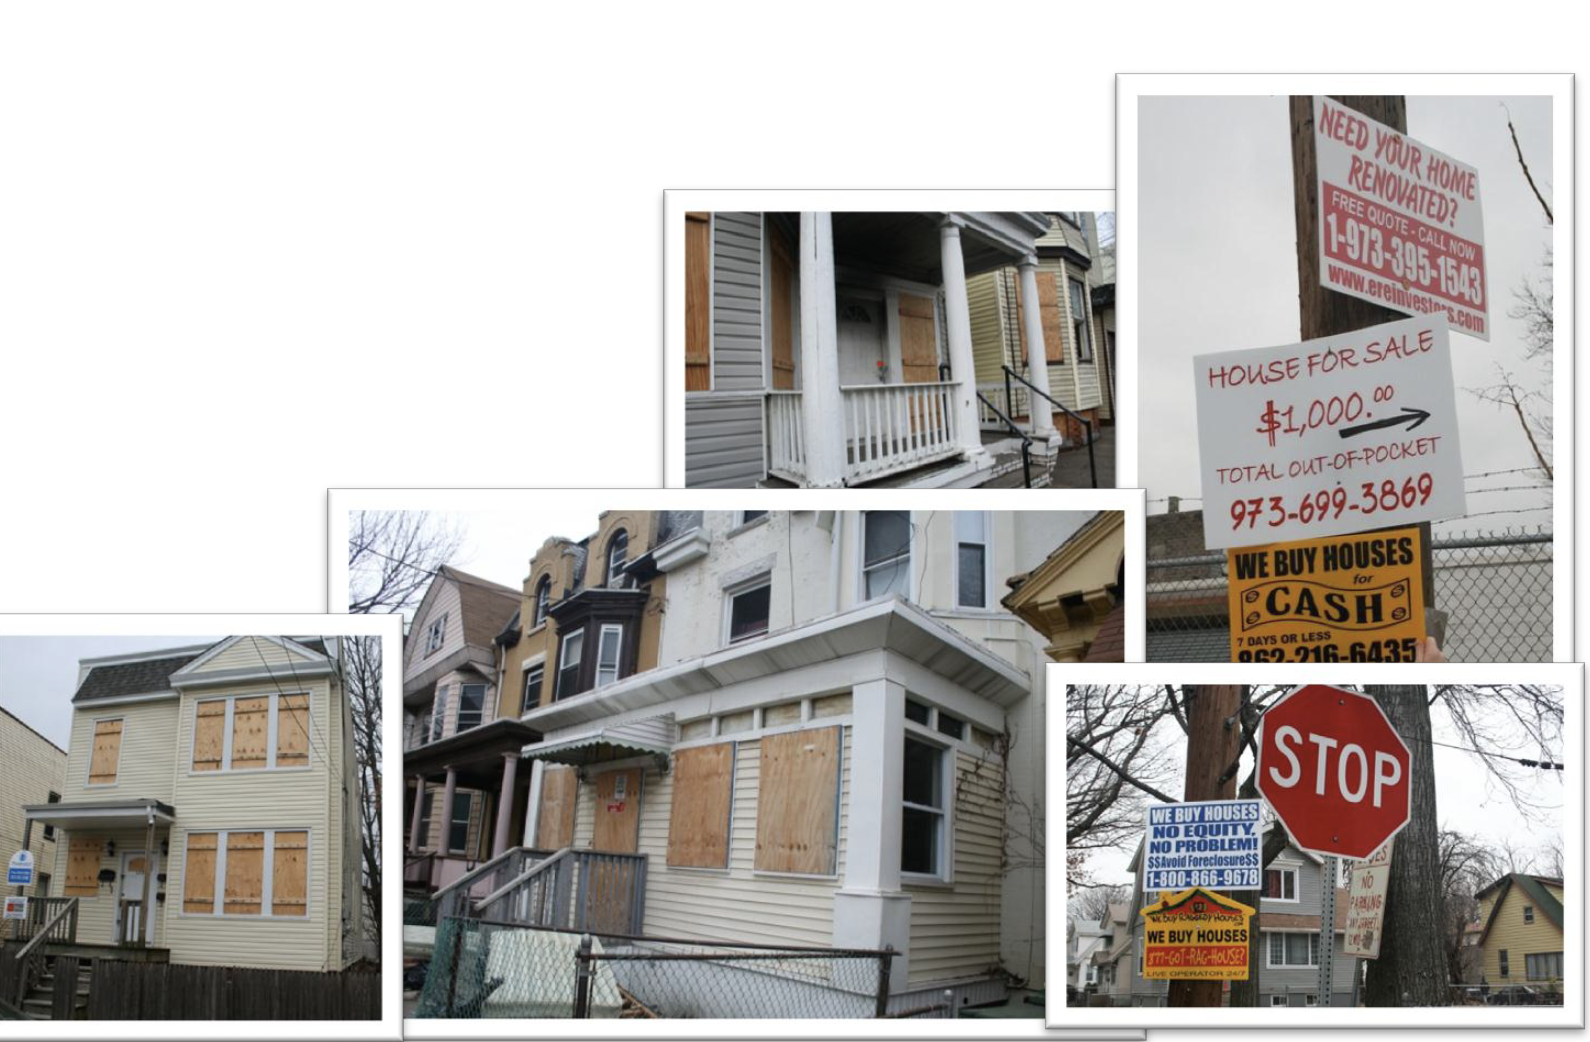 housing foreclosure Voorhees civic engagement Rutgers